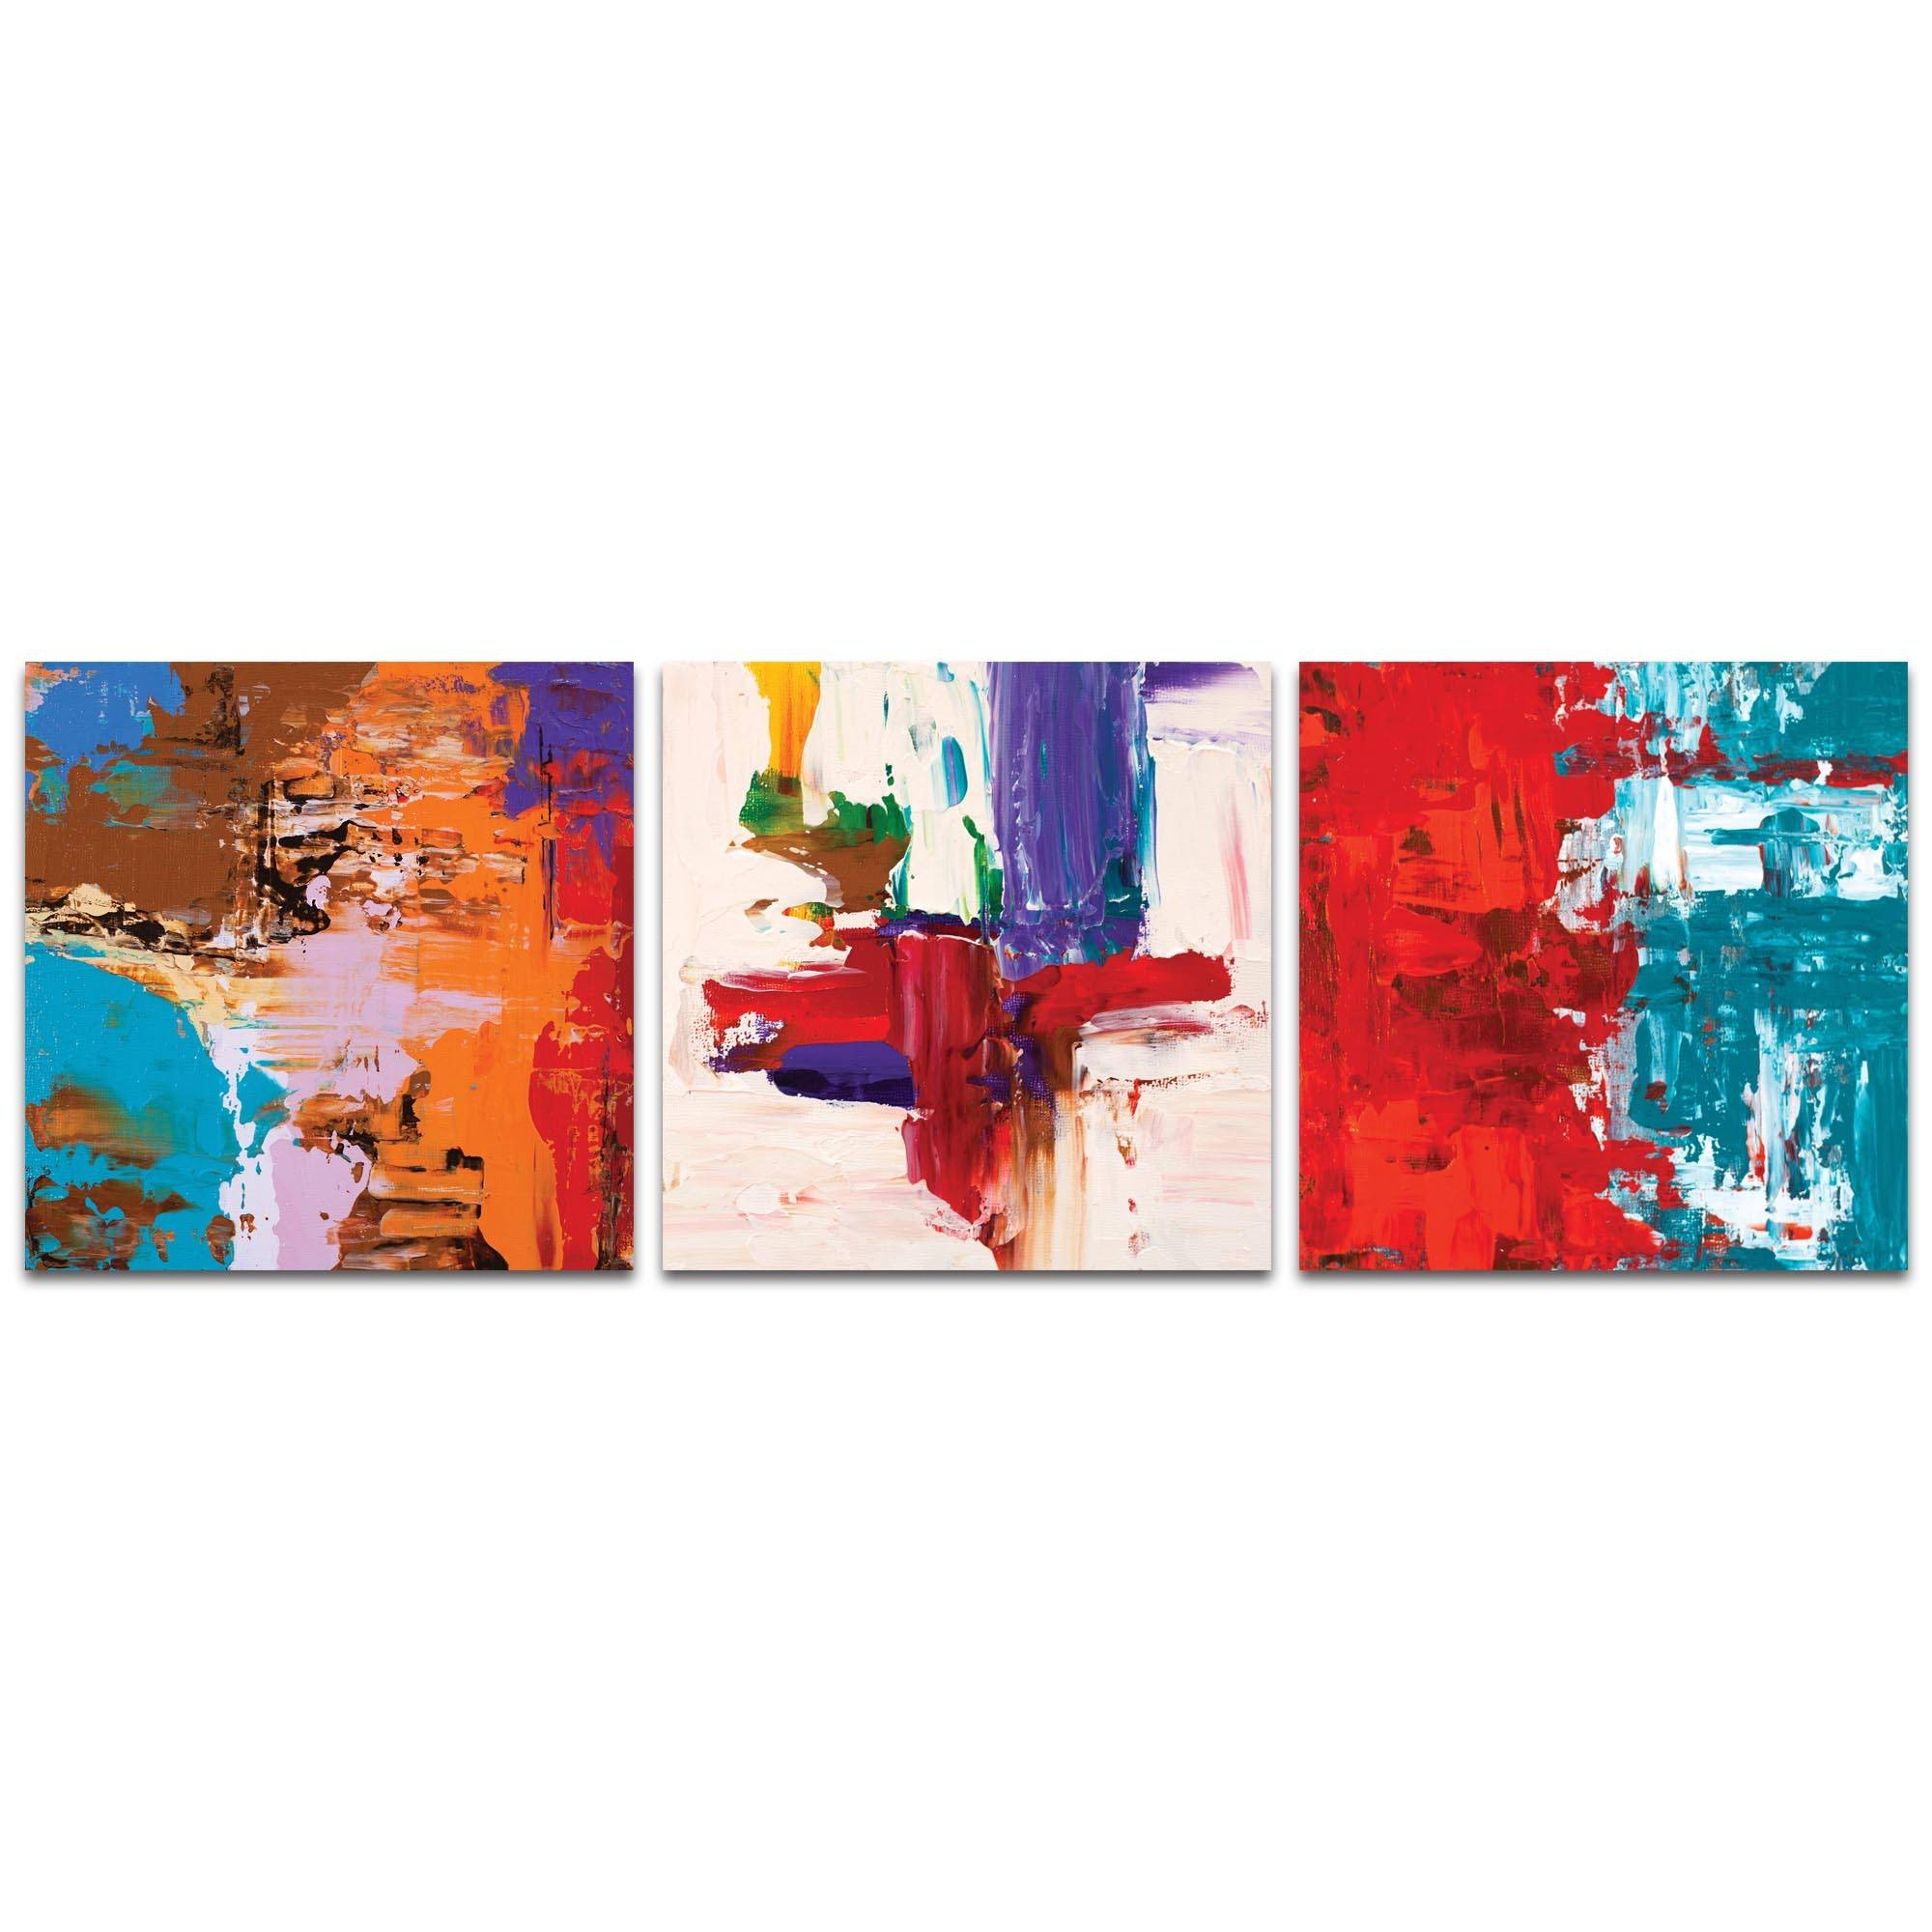 Metal Art Studio – Urban Triptych 5 Largeceleste Reiter For Most Recent Large Triptych Wall Art (View 14 of 20)